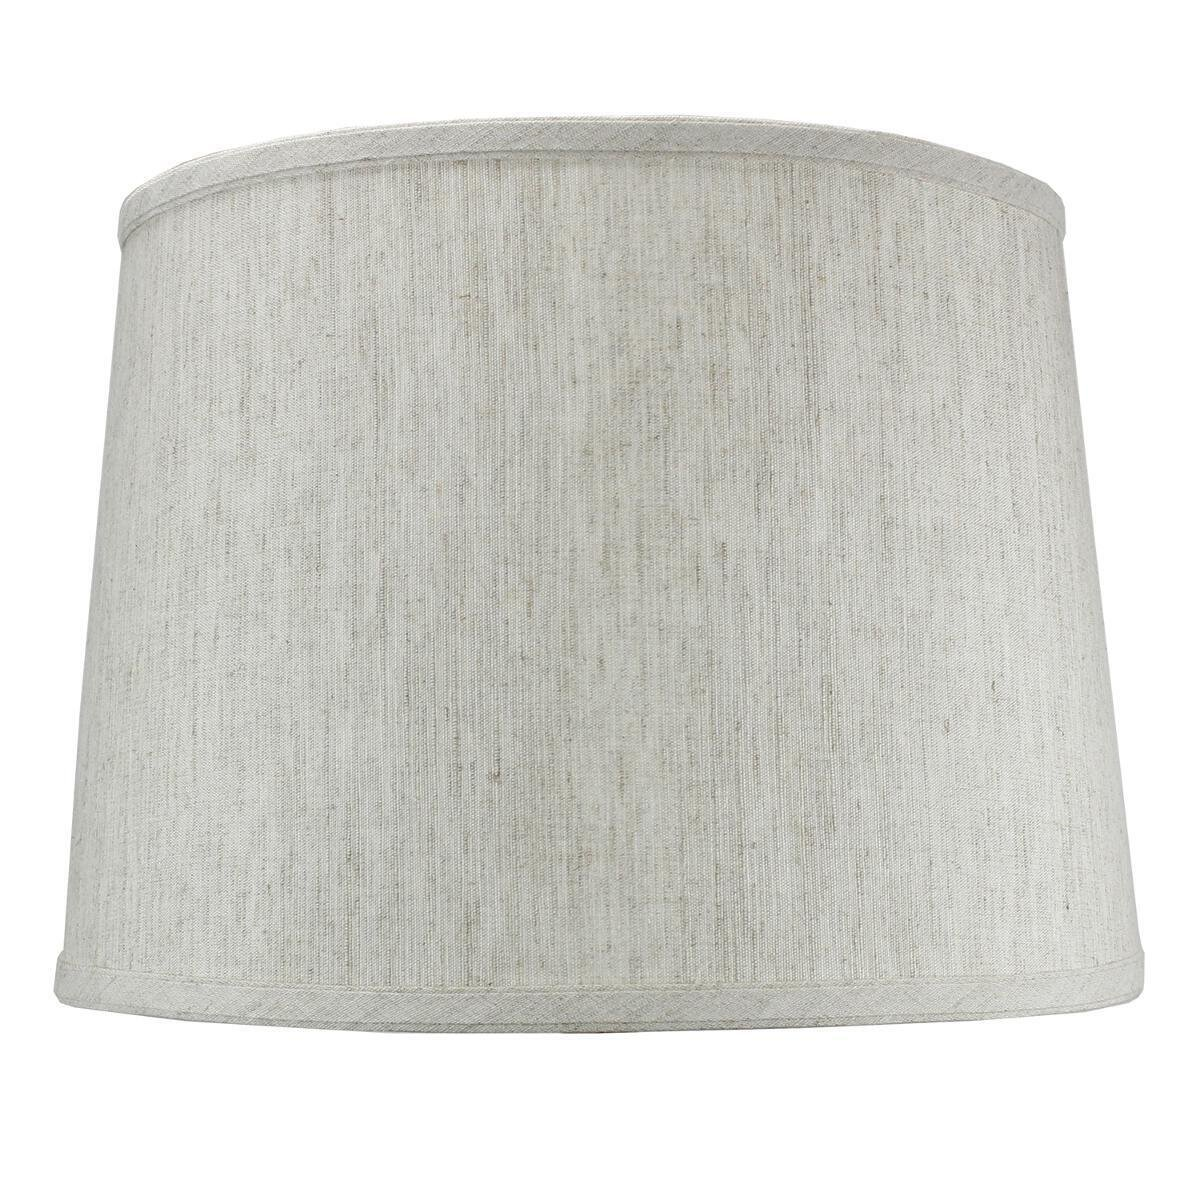 12x14x10 Textured Oatmeal Drum Lampshade Height with Brass Spider Fitter by Home Concept - Perfect for Table and Desk Lamps - Medium, Off-White